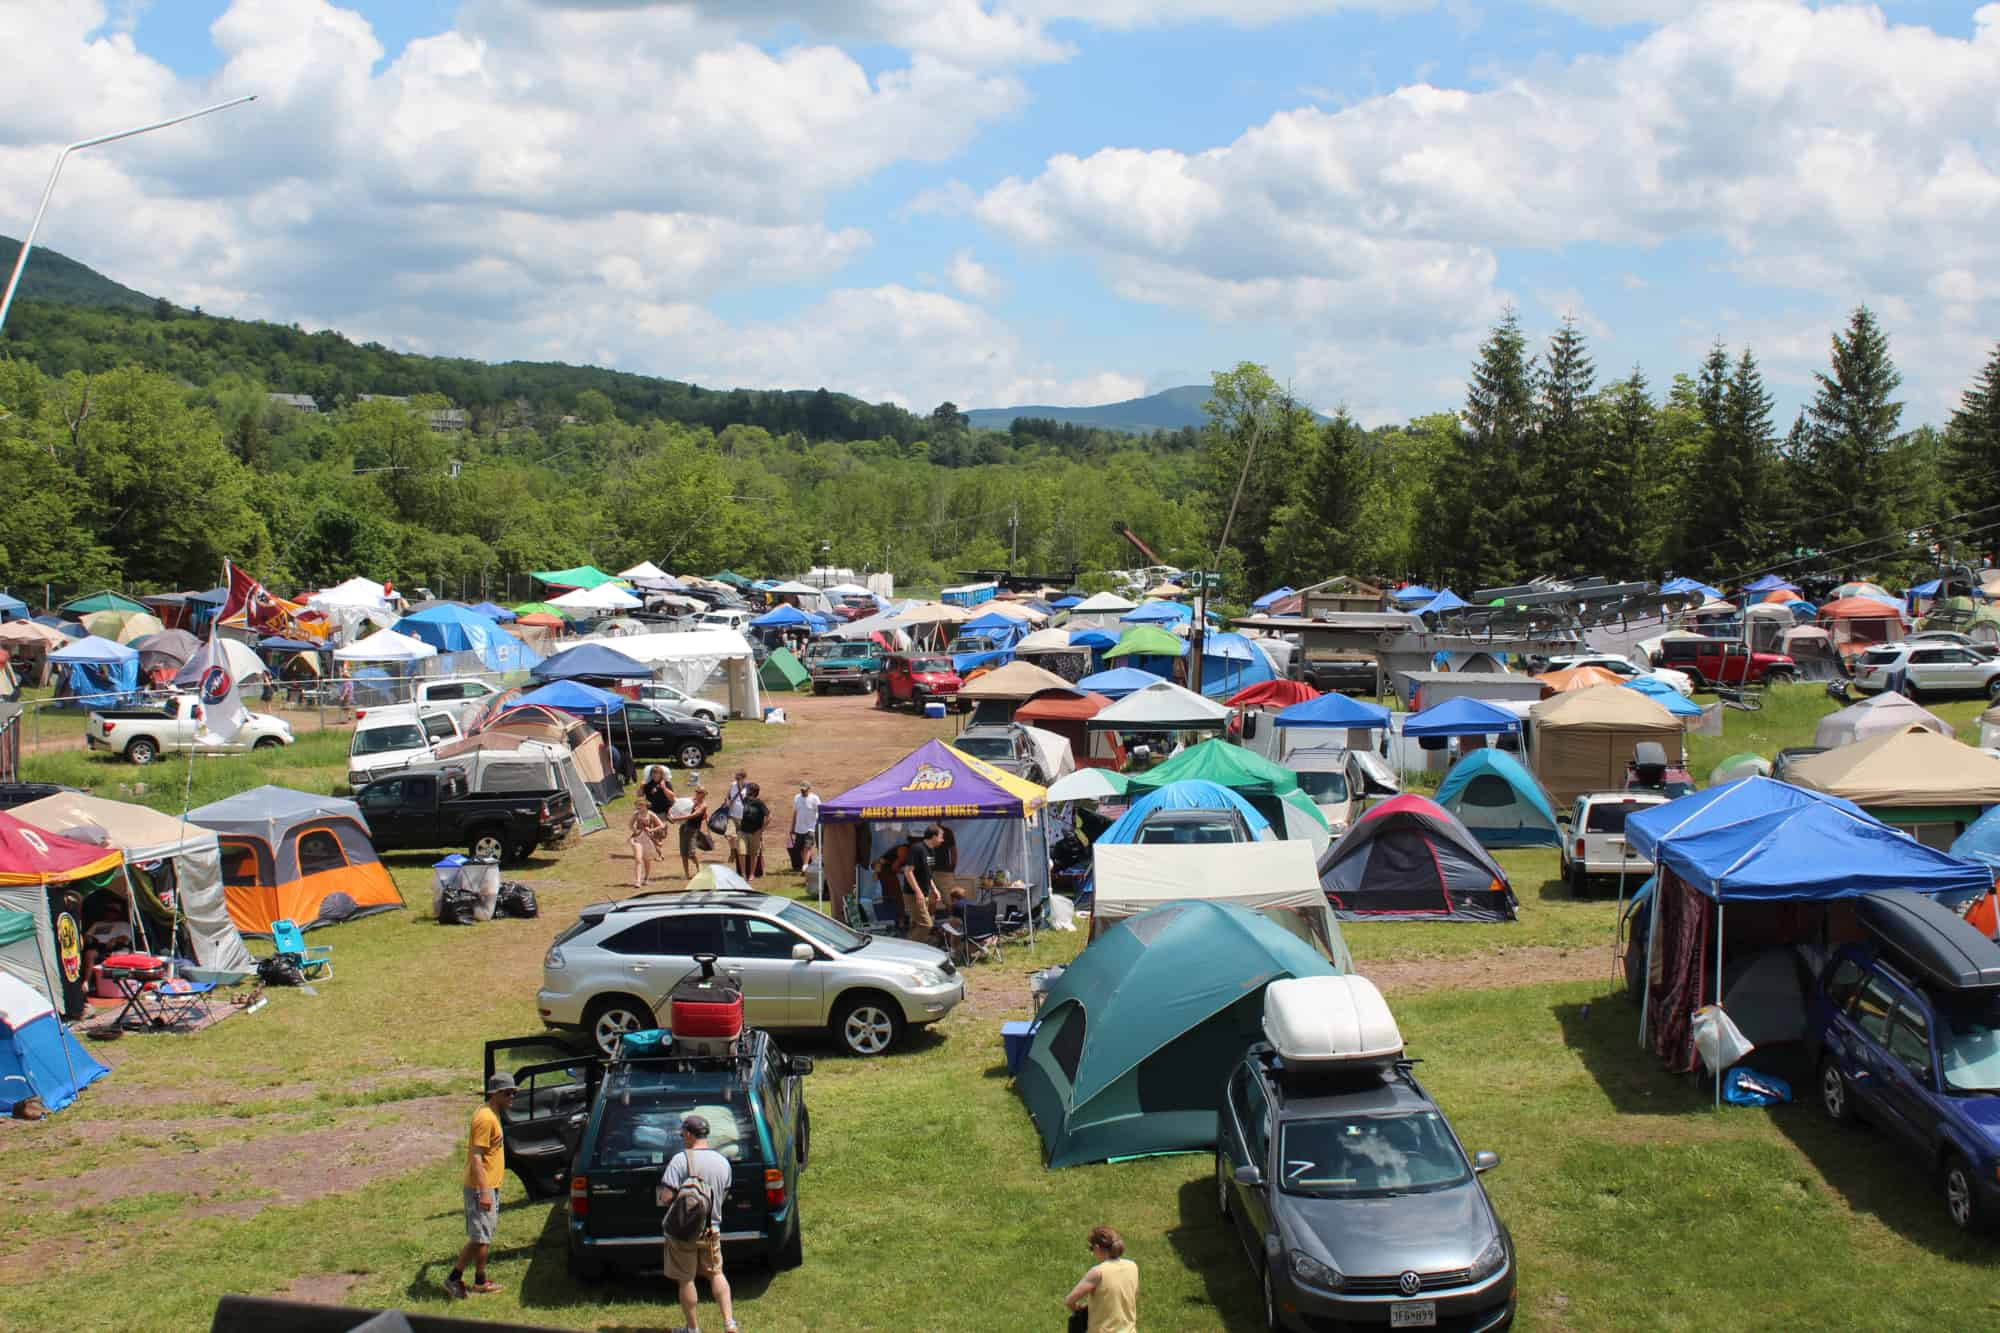 Camping At Mountain Jam